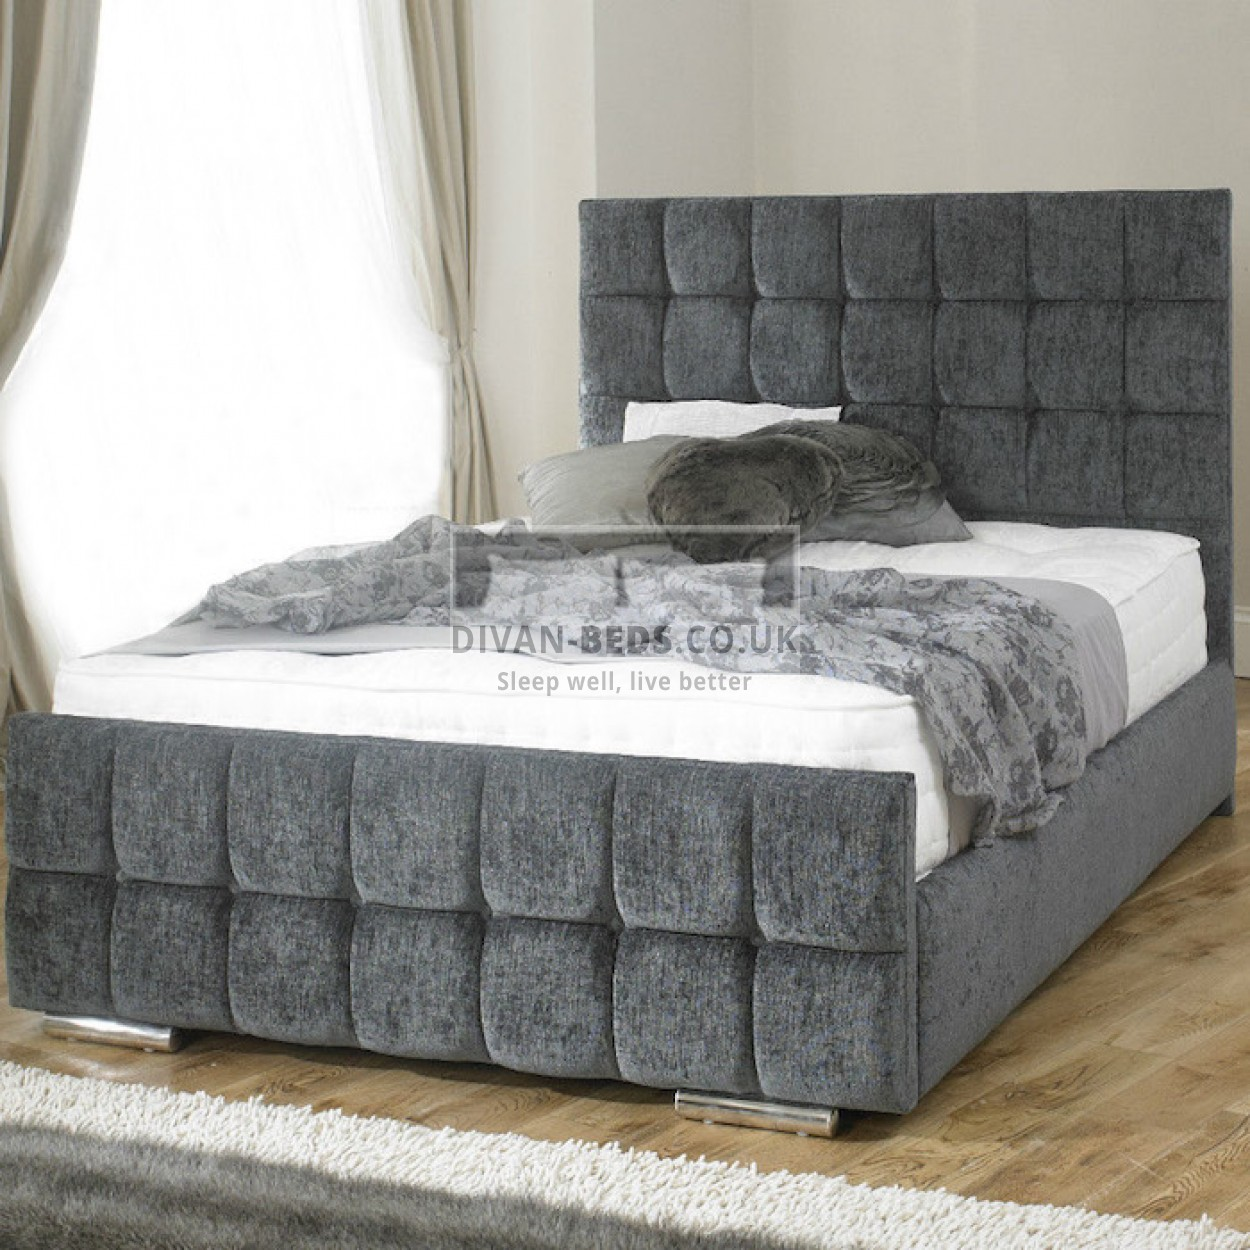 Luxury Memory Foam Mattress Topper